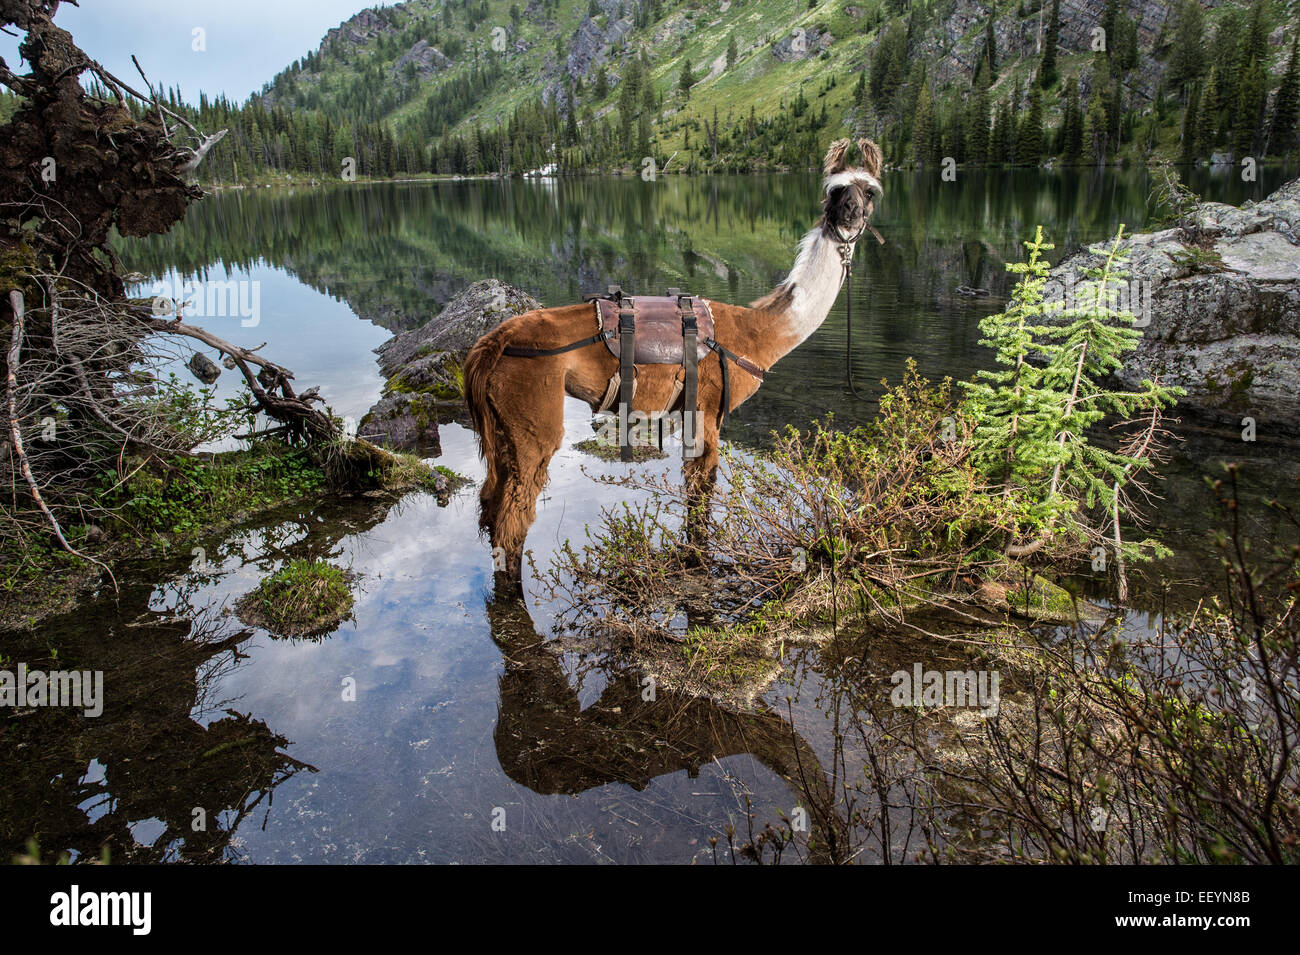 Welcome to the weird and wonderful world of llamas. Llama-trekking is one of the many activities available in remote - Stock Image